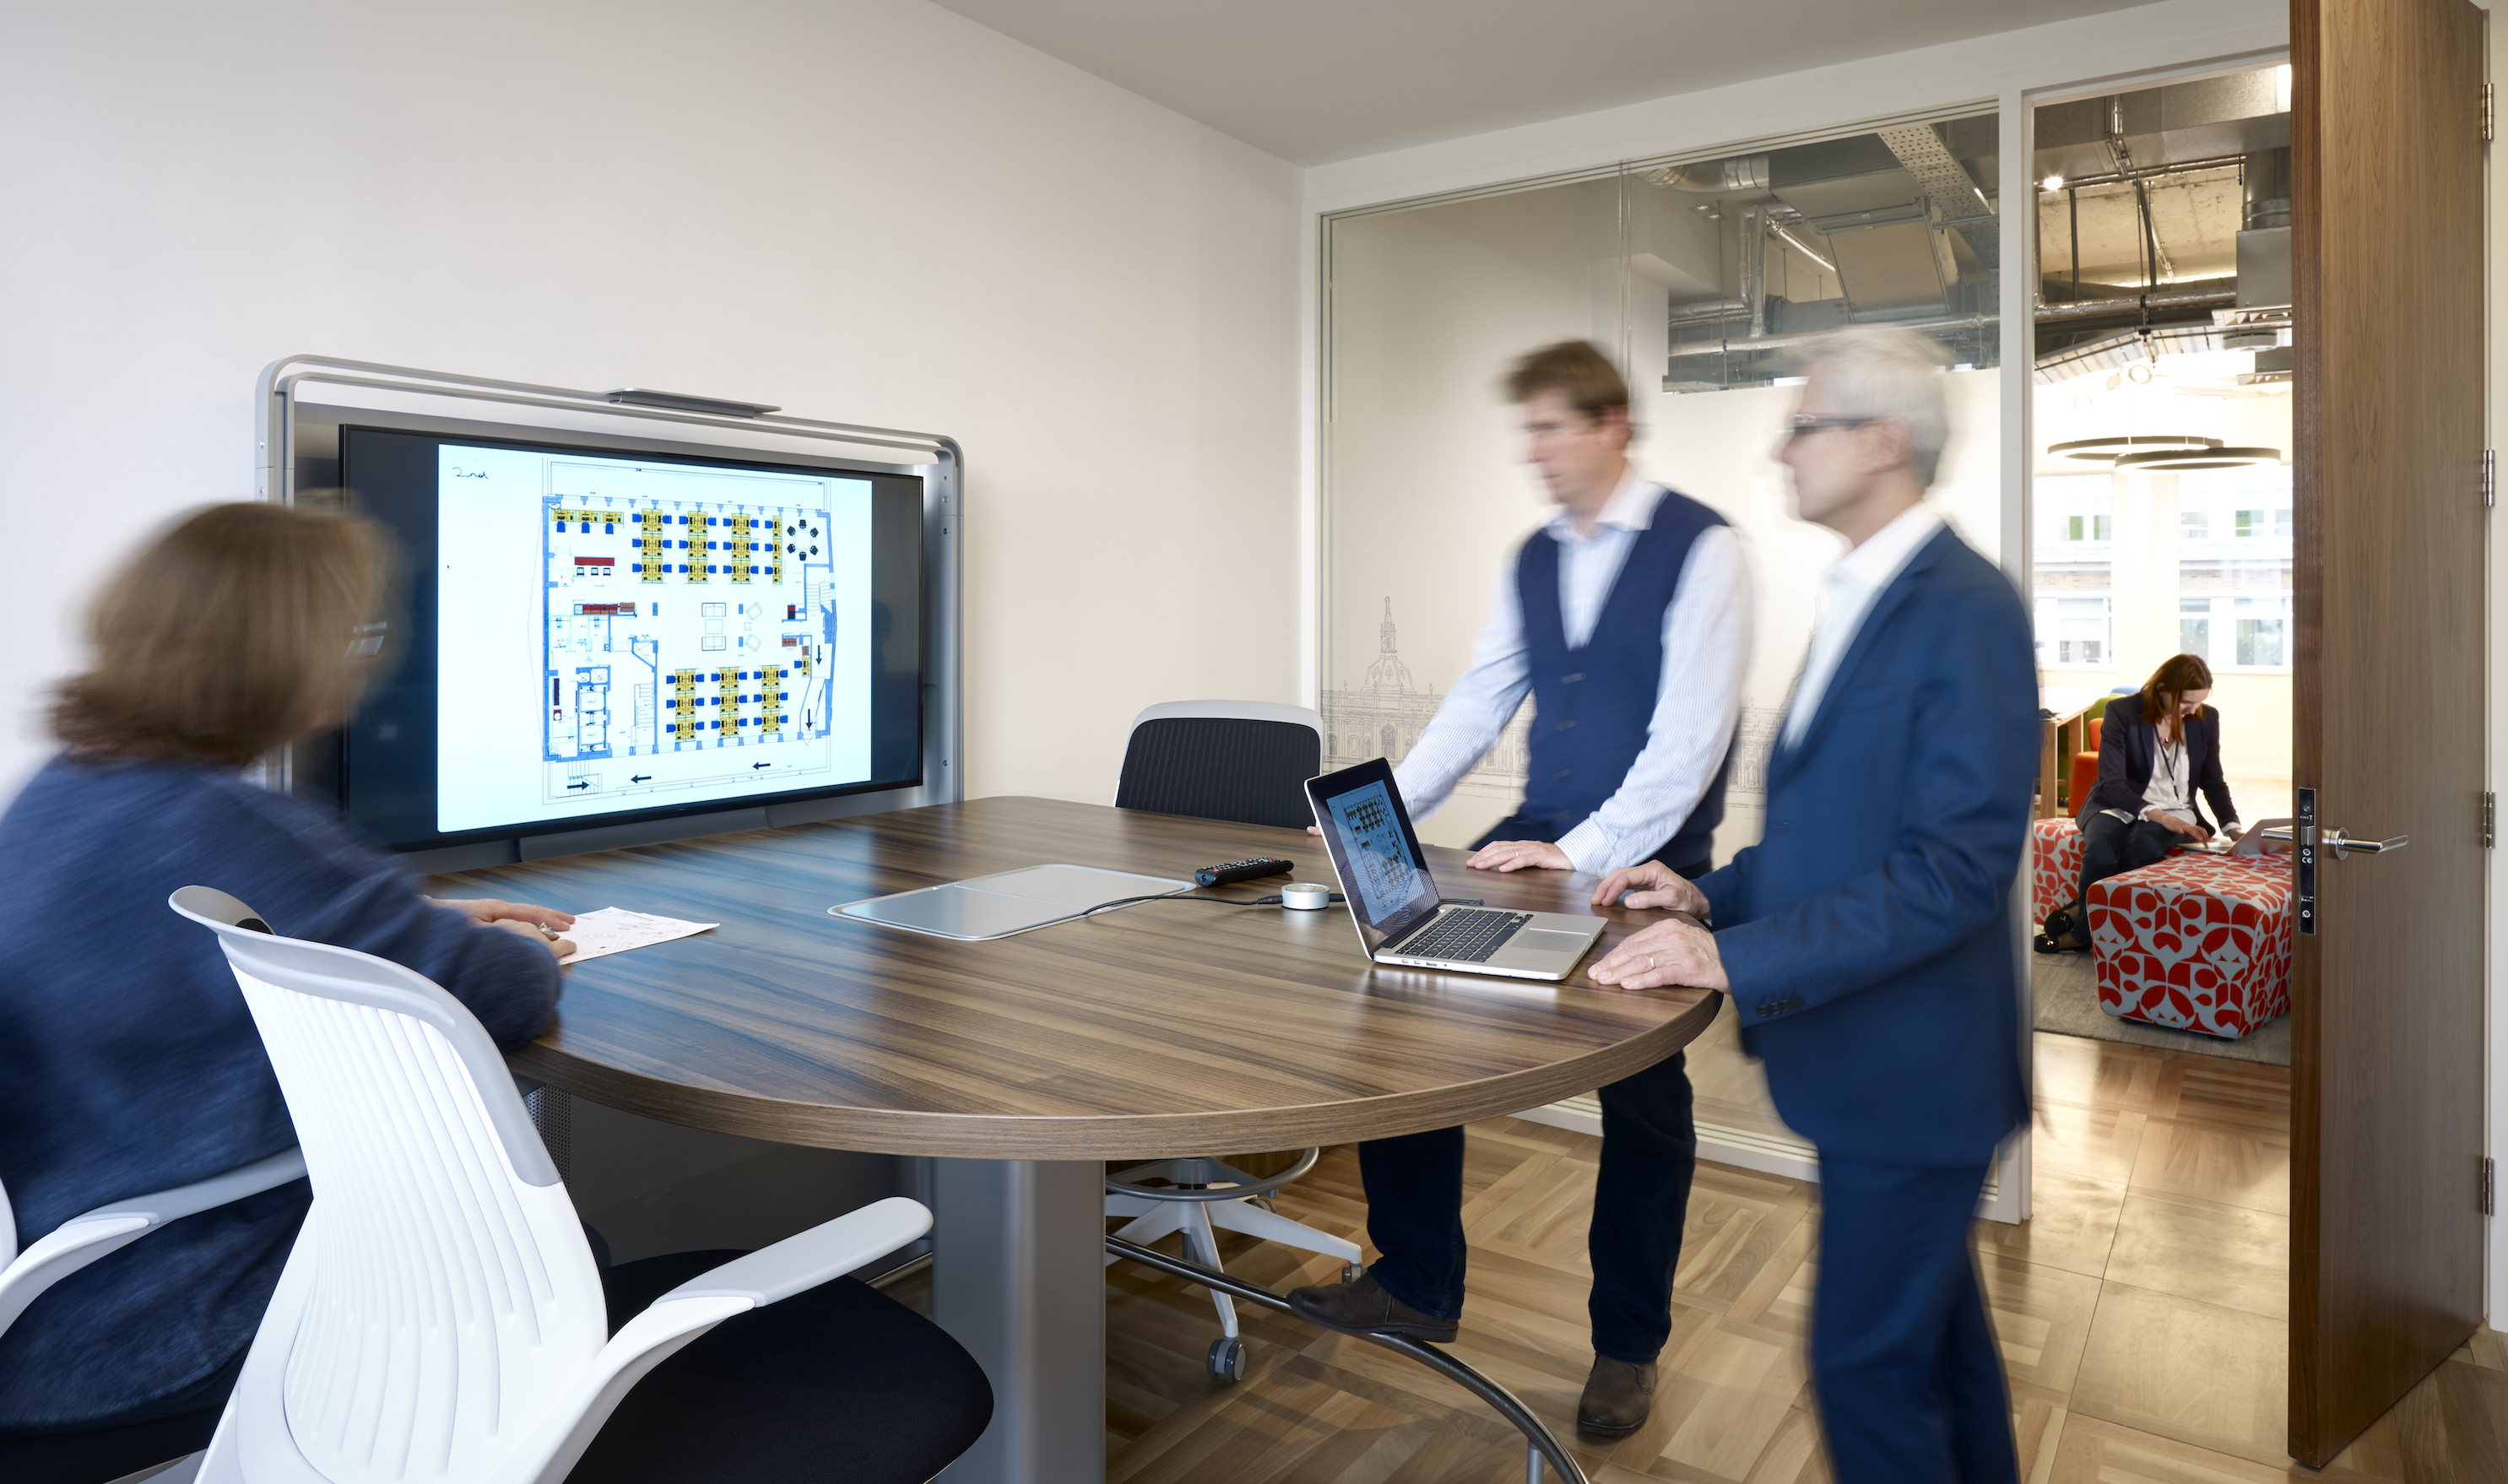 Us&co Meeting Rooms standing meeting table